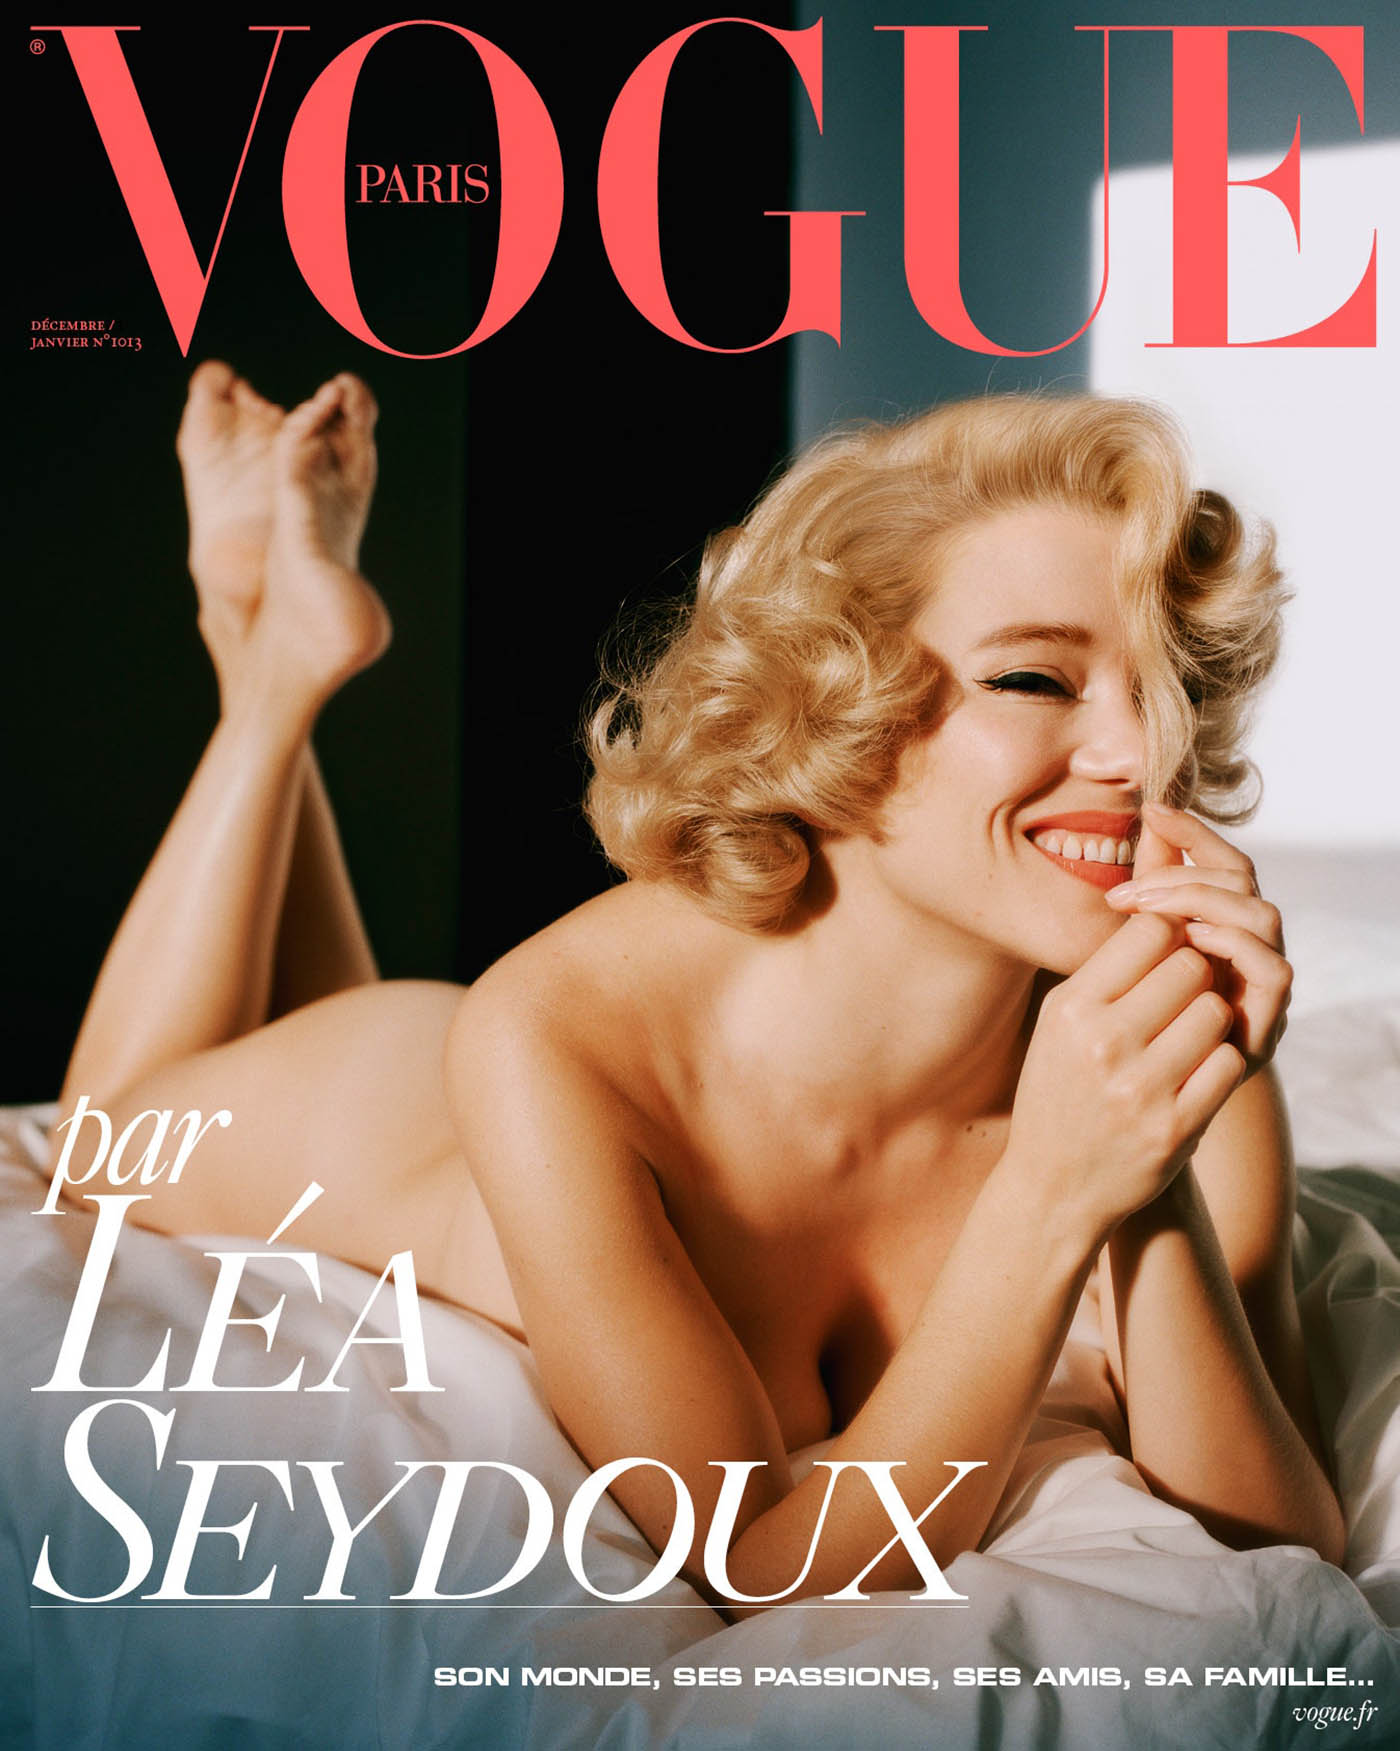 Léa Seydoux covers Vogue Paris December 2020 January 2021 by Alasdair McLellan